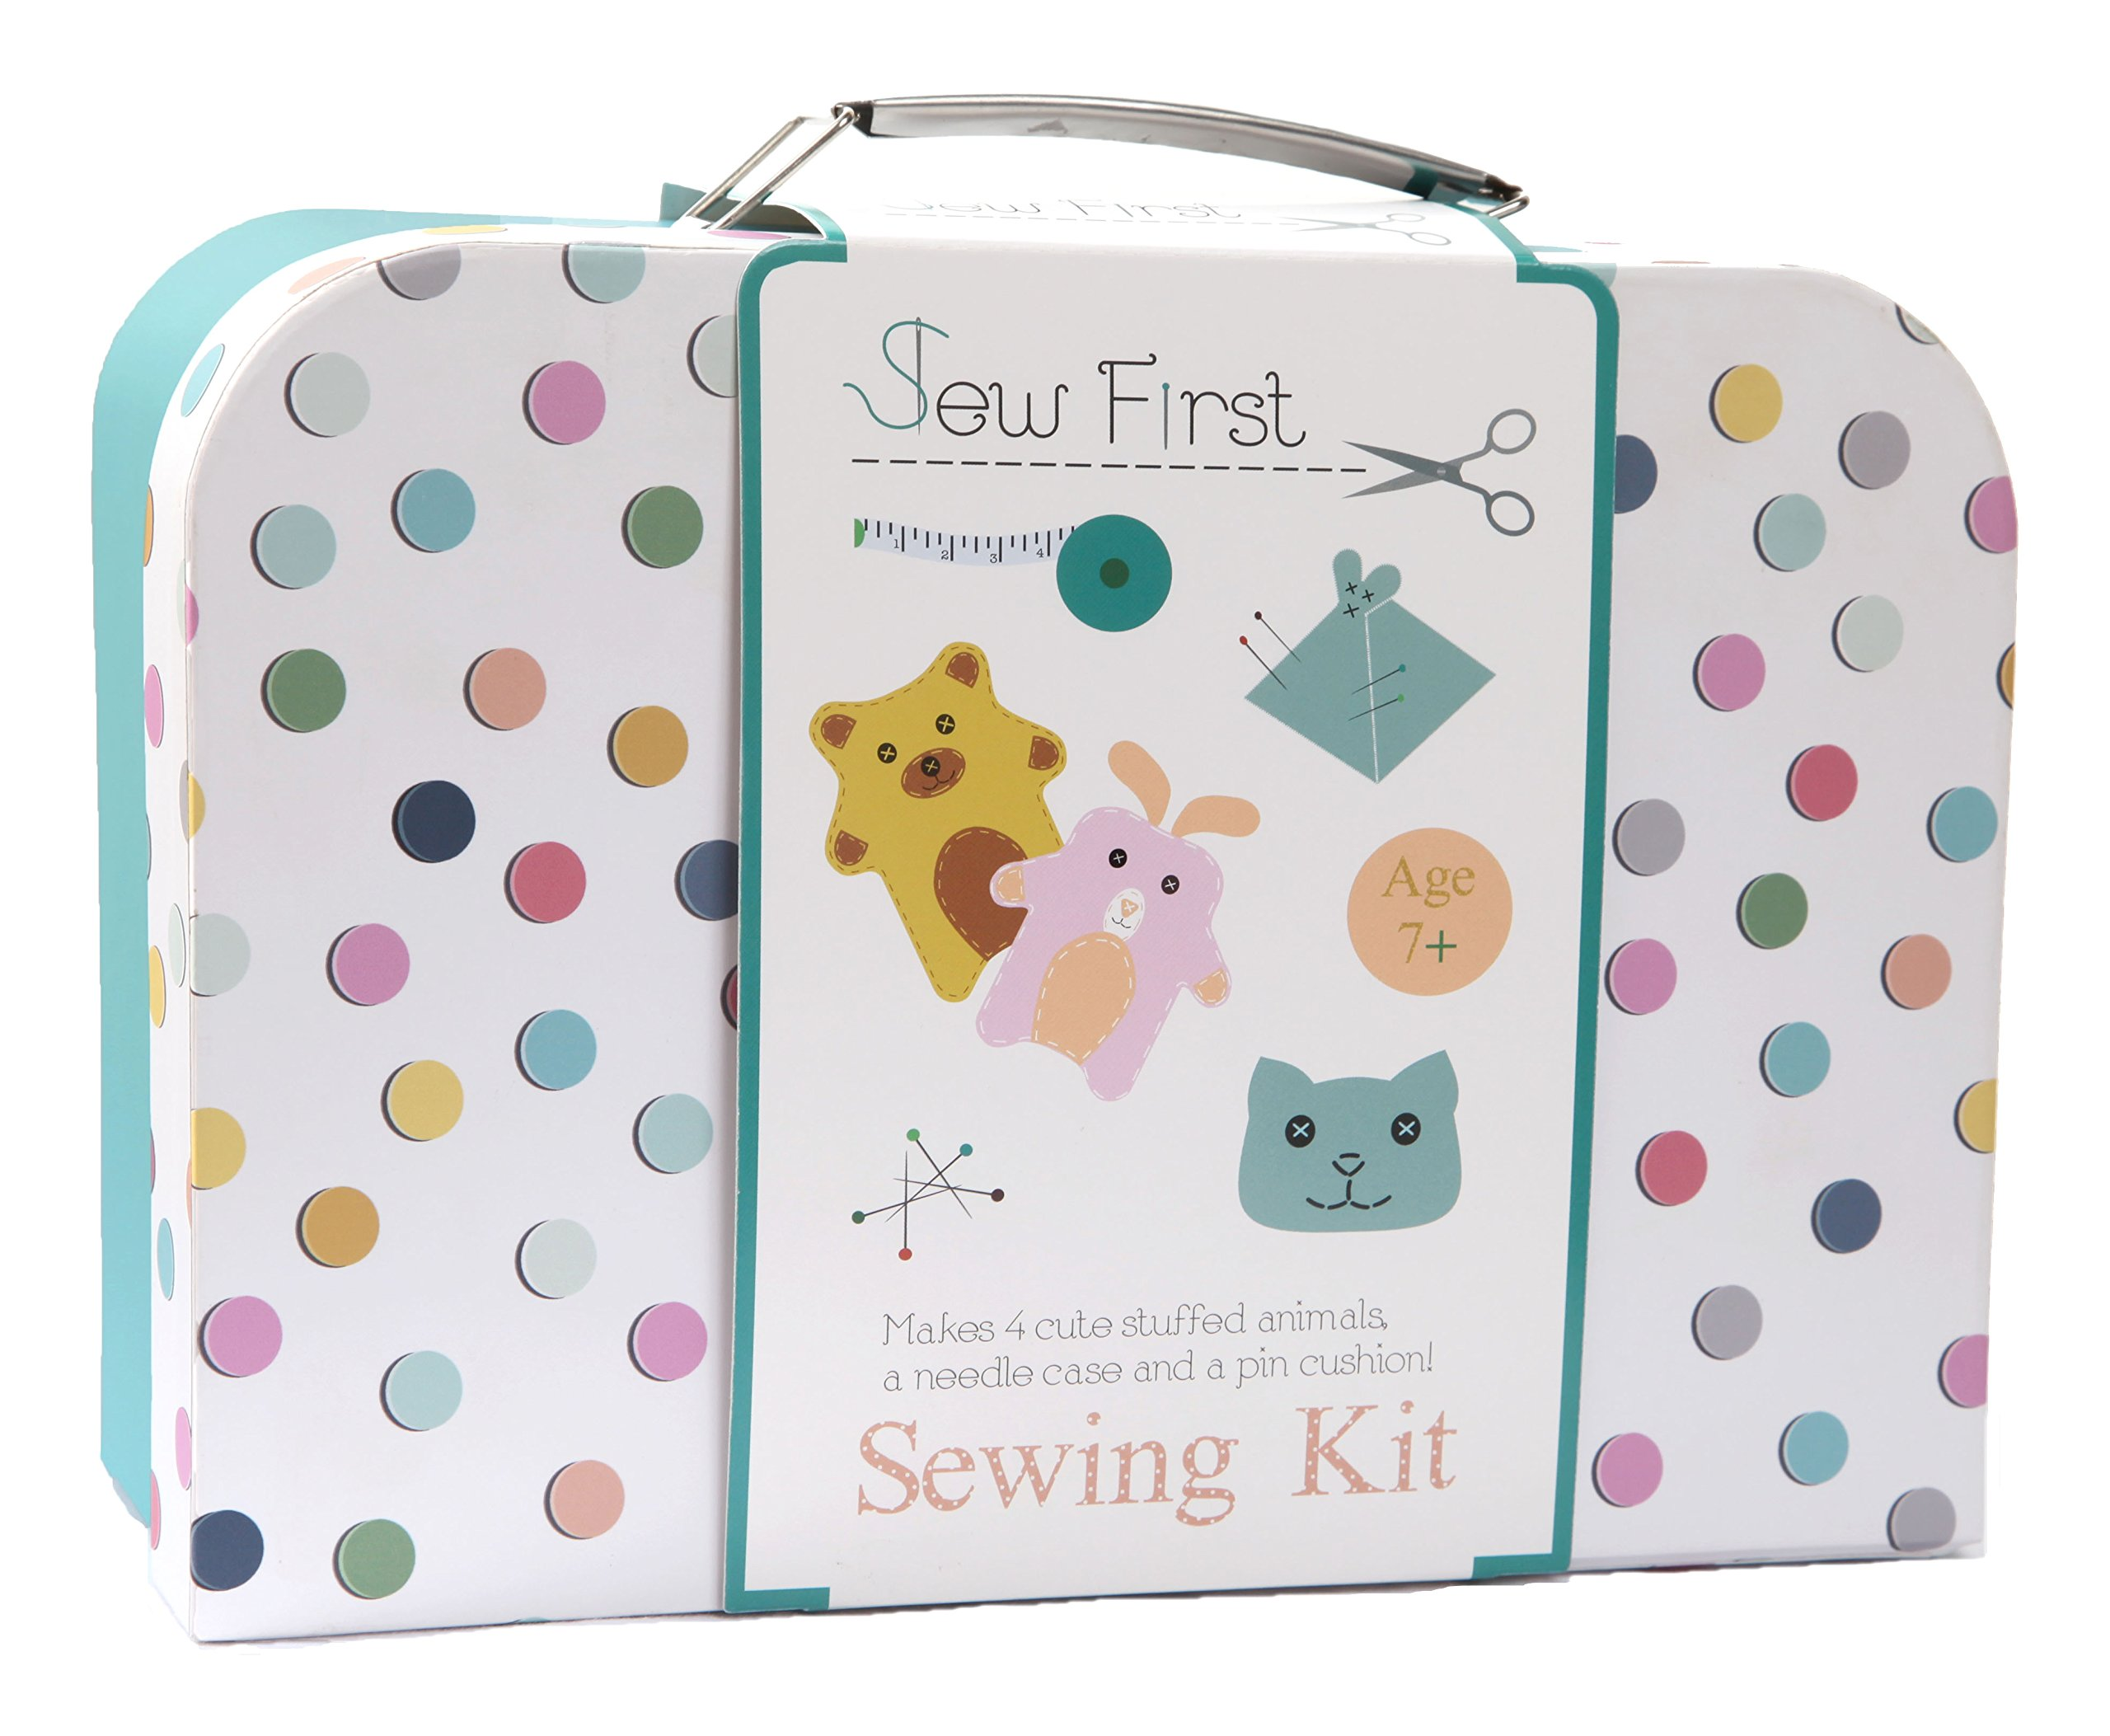 Sew First Beginner Sewing Kit For Kids - From by Sew First